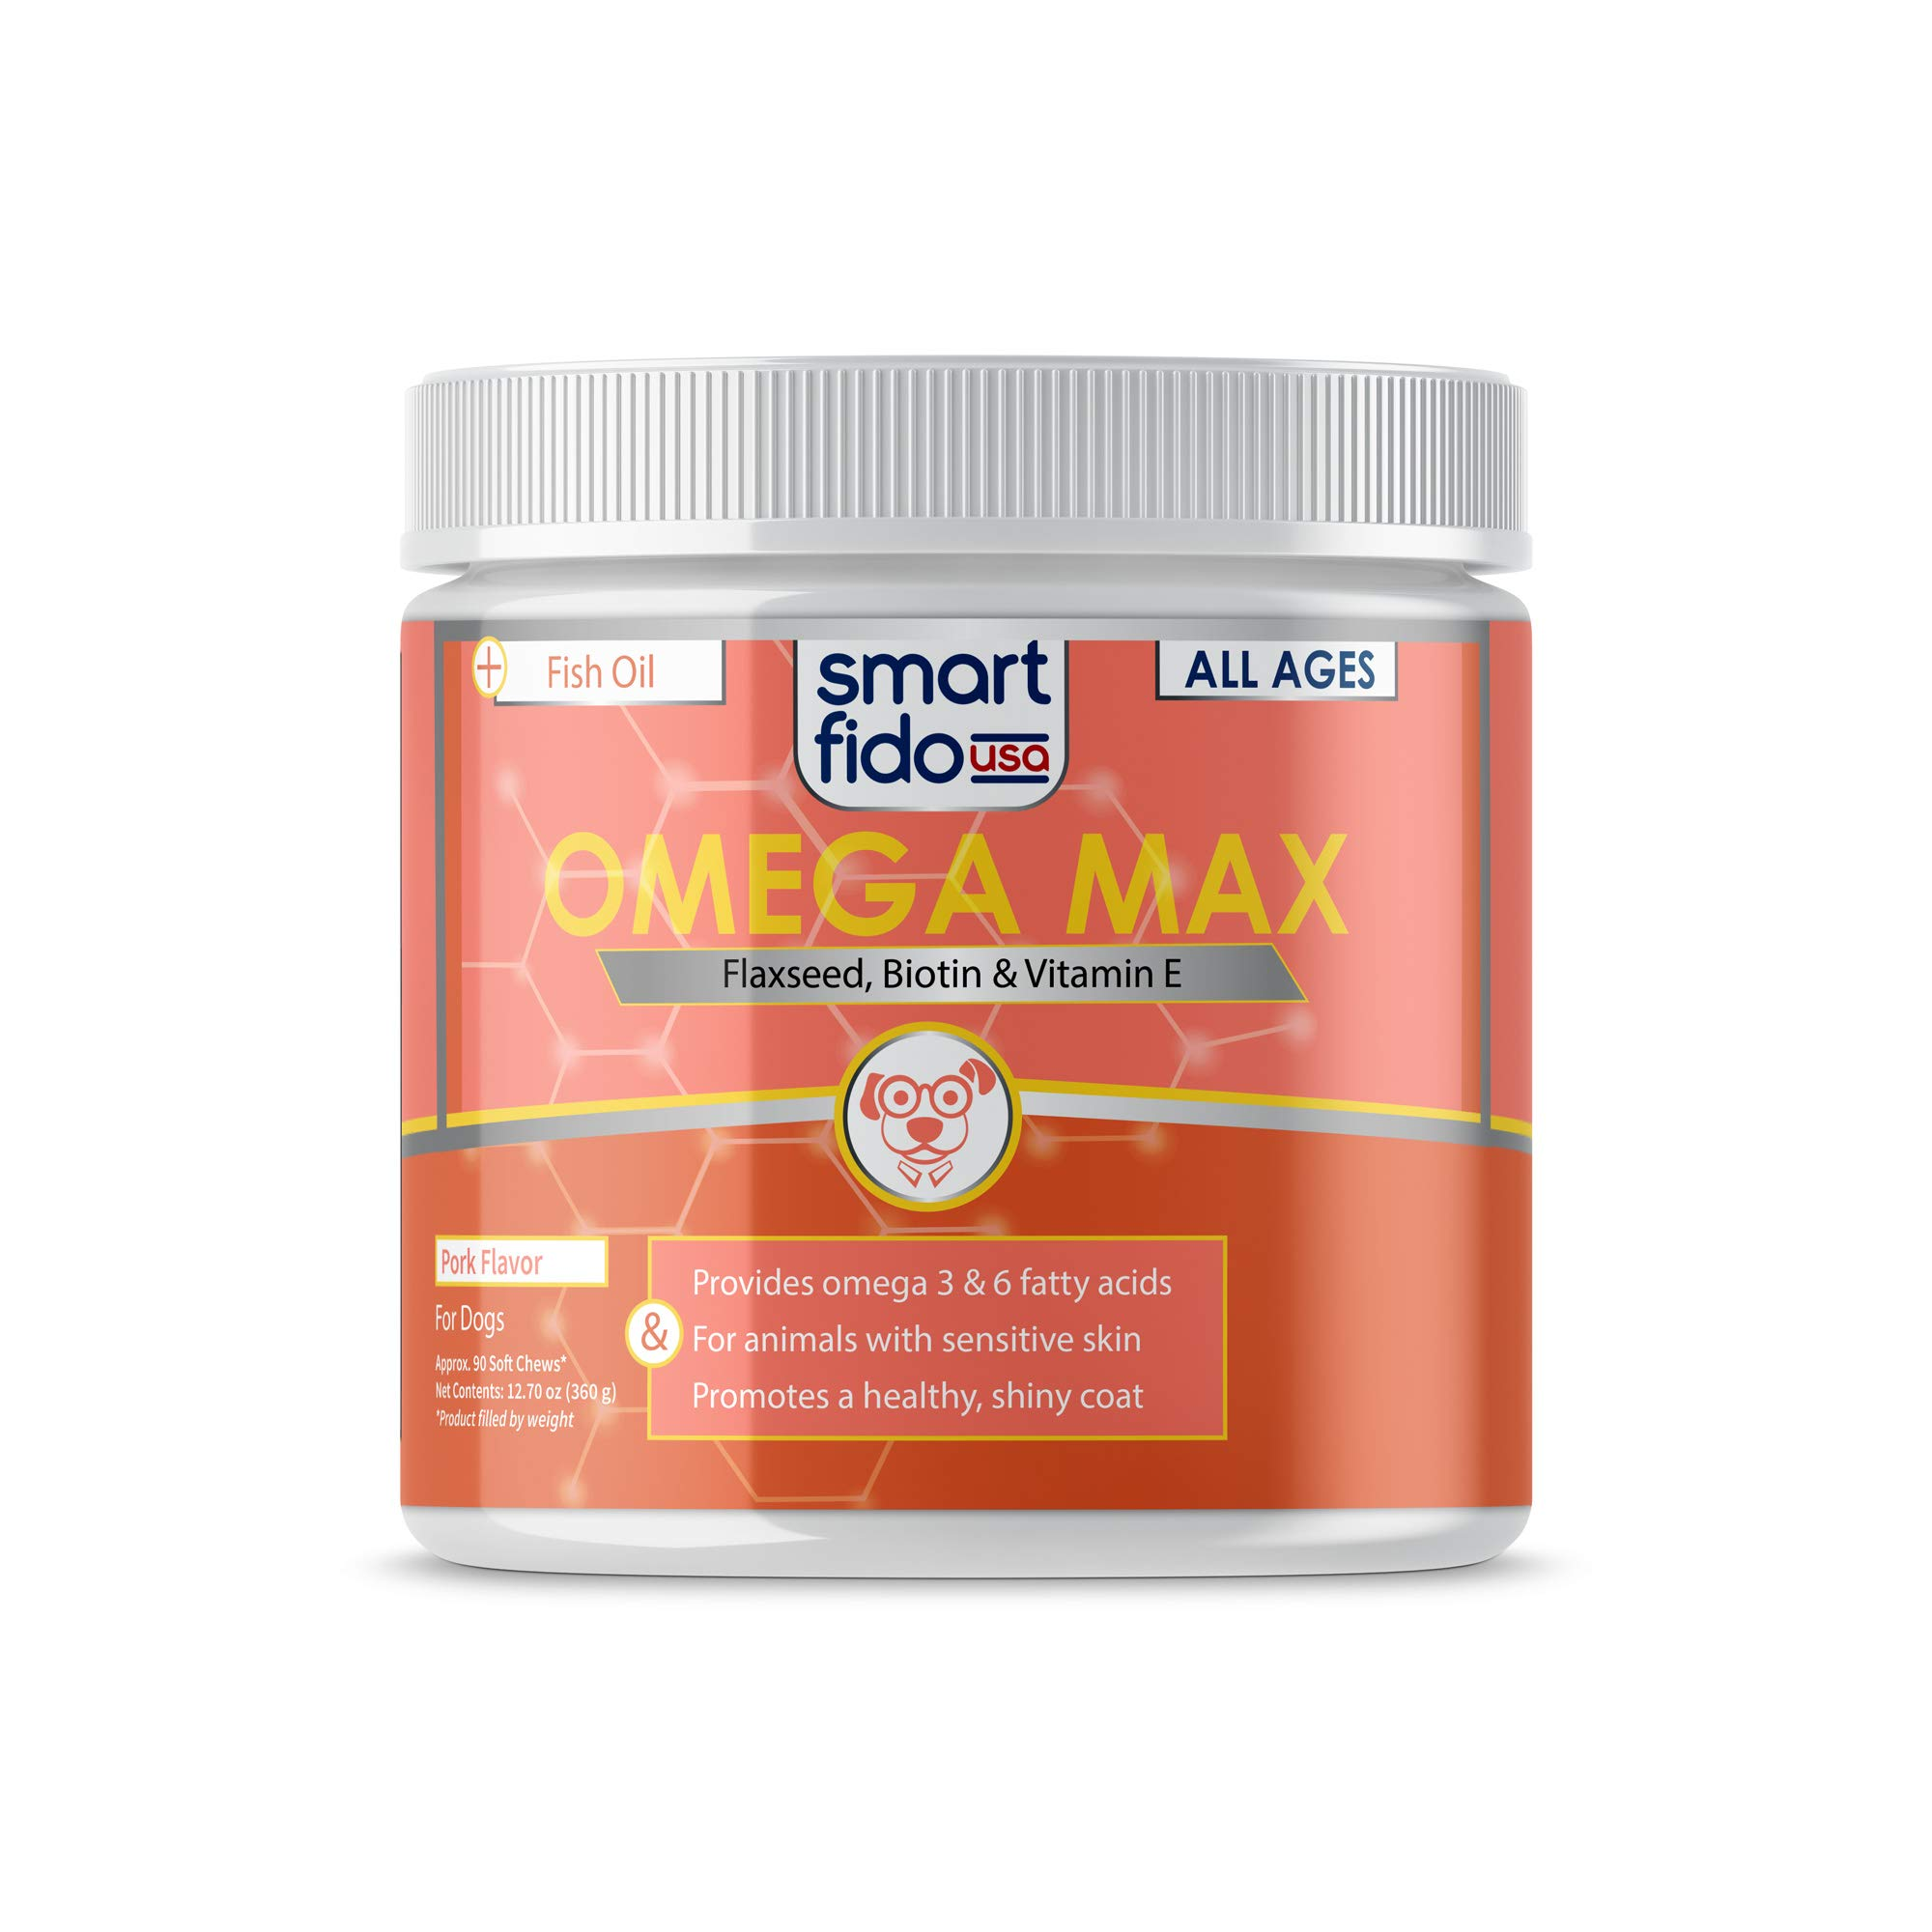 Smart Fido 95-060 Triple Omega & Salmon Oil 90 Ct Soft Chews for Dogs - with Three Omega Fatty Acids (3, 6 &9) Packed with EPA & DHA, Fish Oil